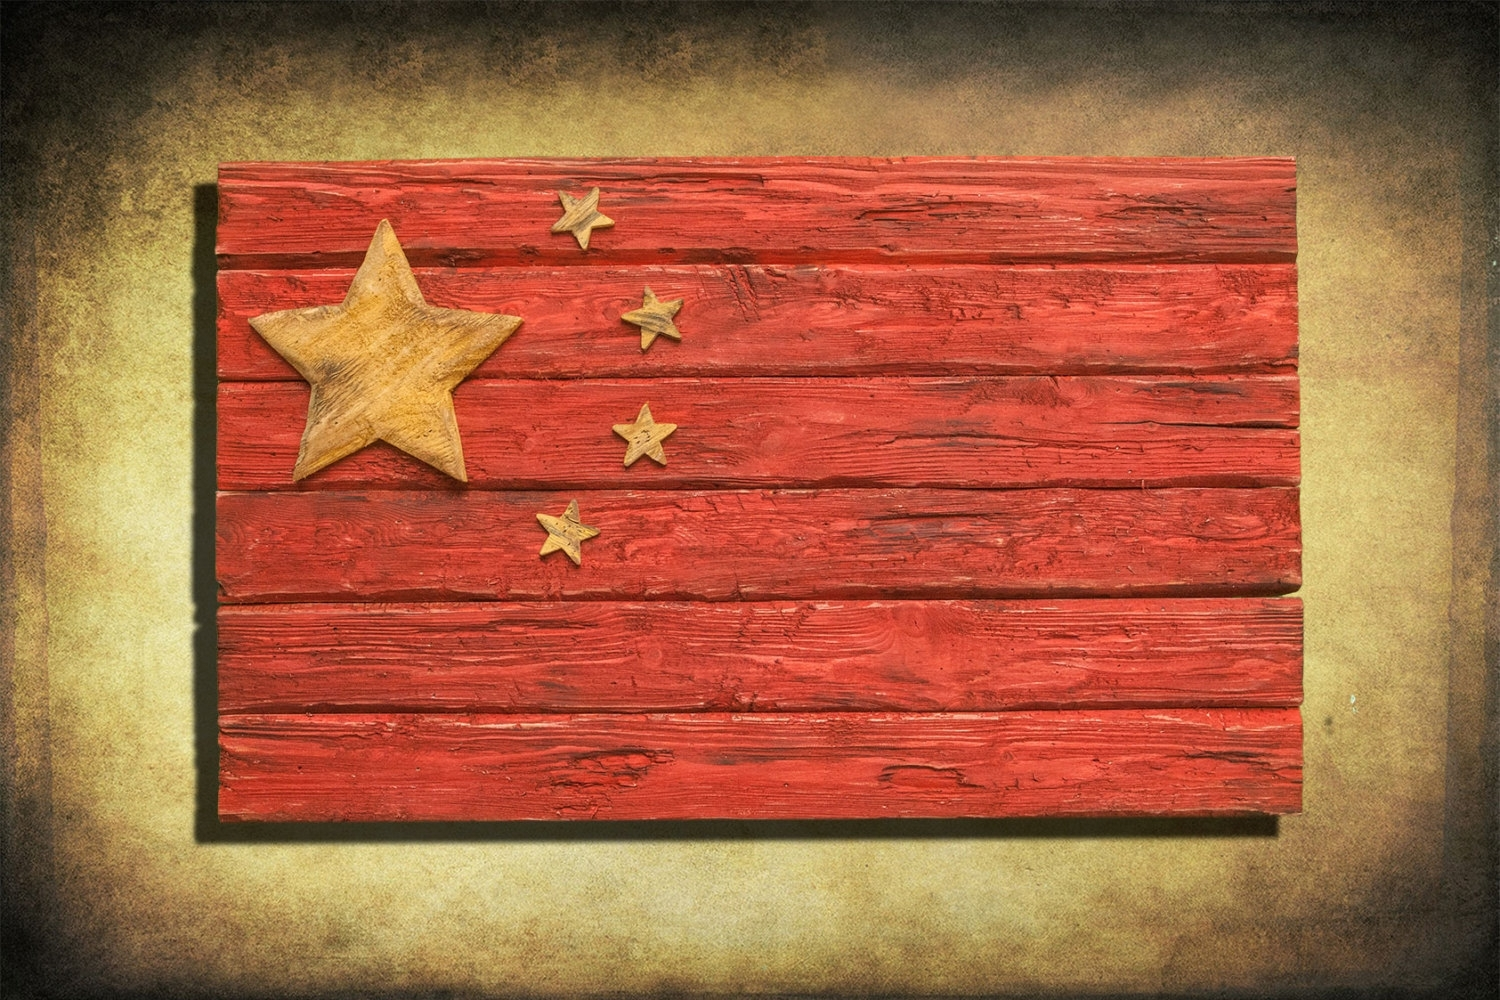 Handmade, Distressed Wooden Chinese Flag, Vintage, Art, Distressed Regarding Best And Newest Chinese Wall Art (View 14 of 20)